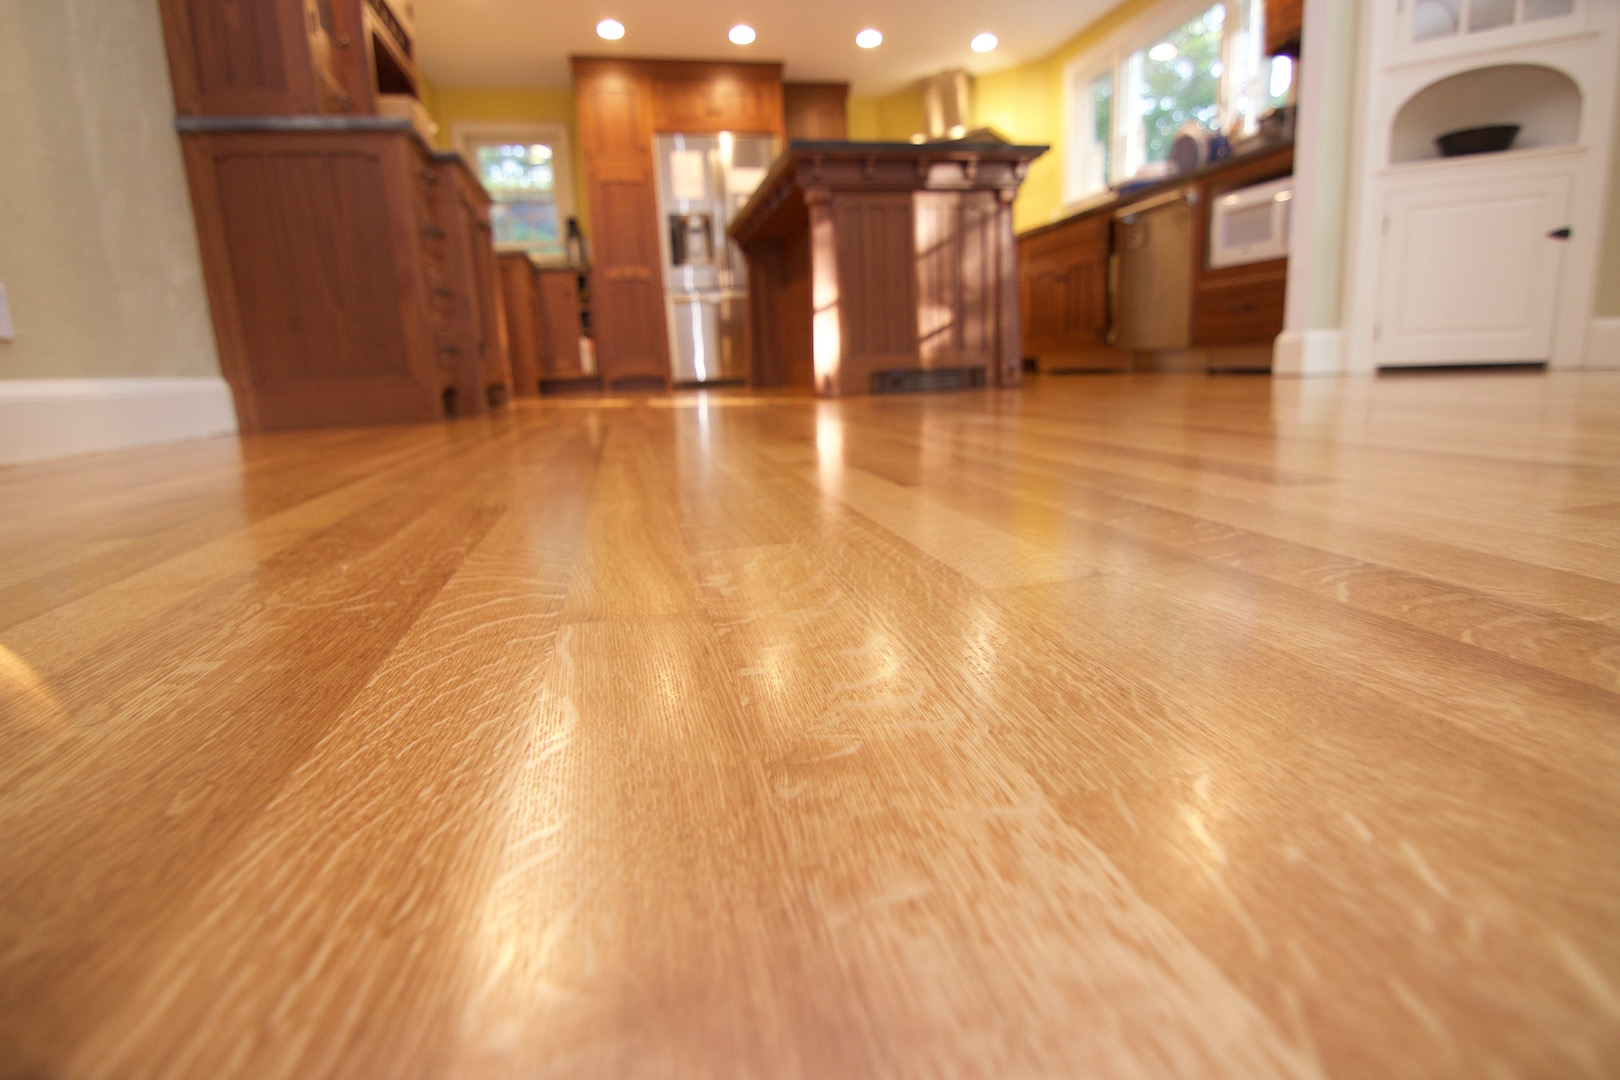 Best Finish For Hardwood Floors minwax stain chart advanta envee loose lay wood planks garage flooring llc Best Way To Apply Polyurethane Floor Finish Polyurethane Roller